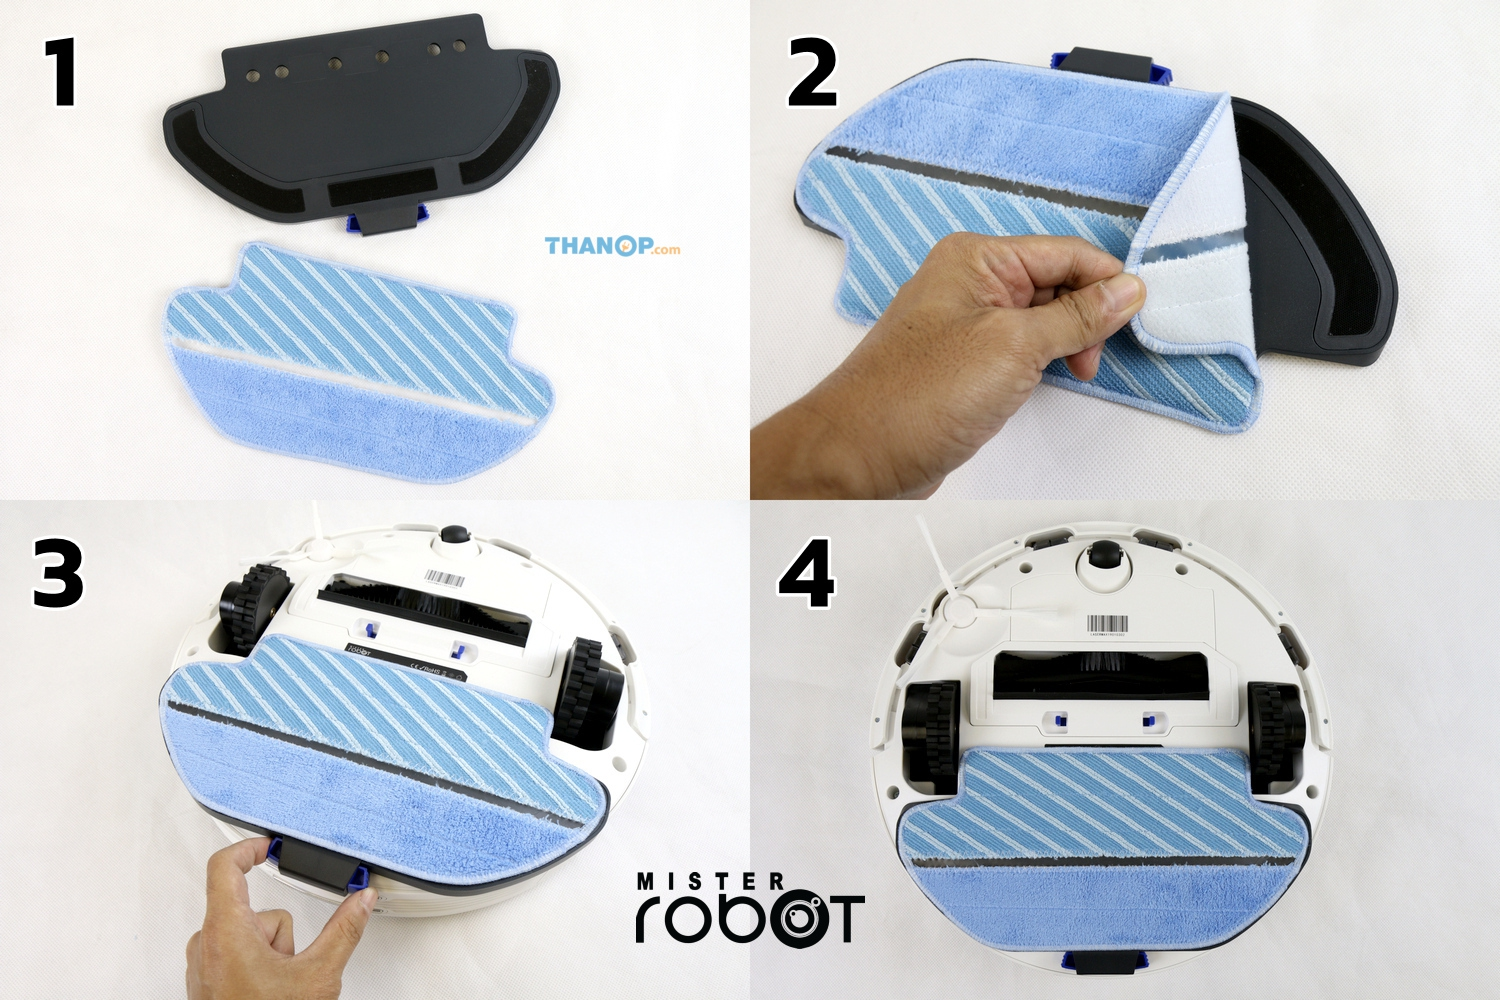 mister-robot-laser-max-microfiber-cloth-and-plate-installation